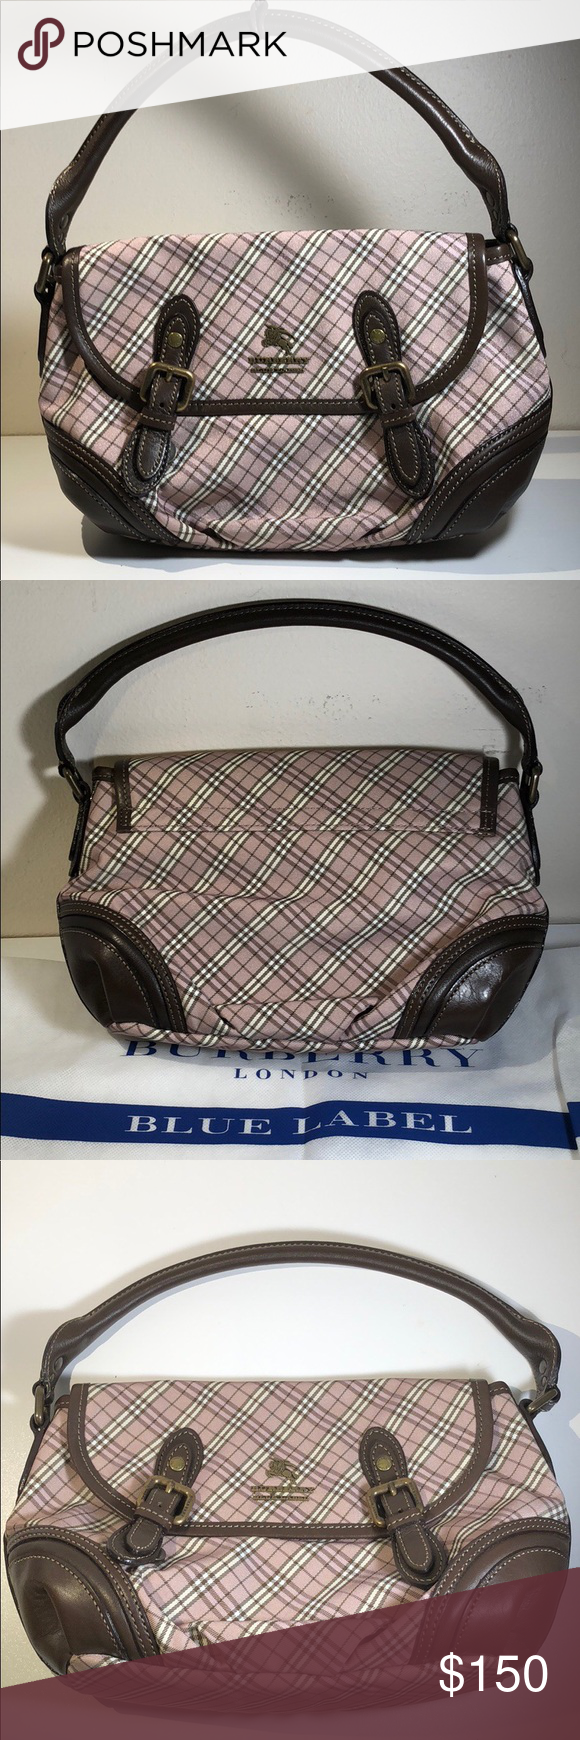 ec8fee6e03bc Authentic Burberry Blue Label Canvas Satchel The bag good condition. The bag  was made in